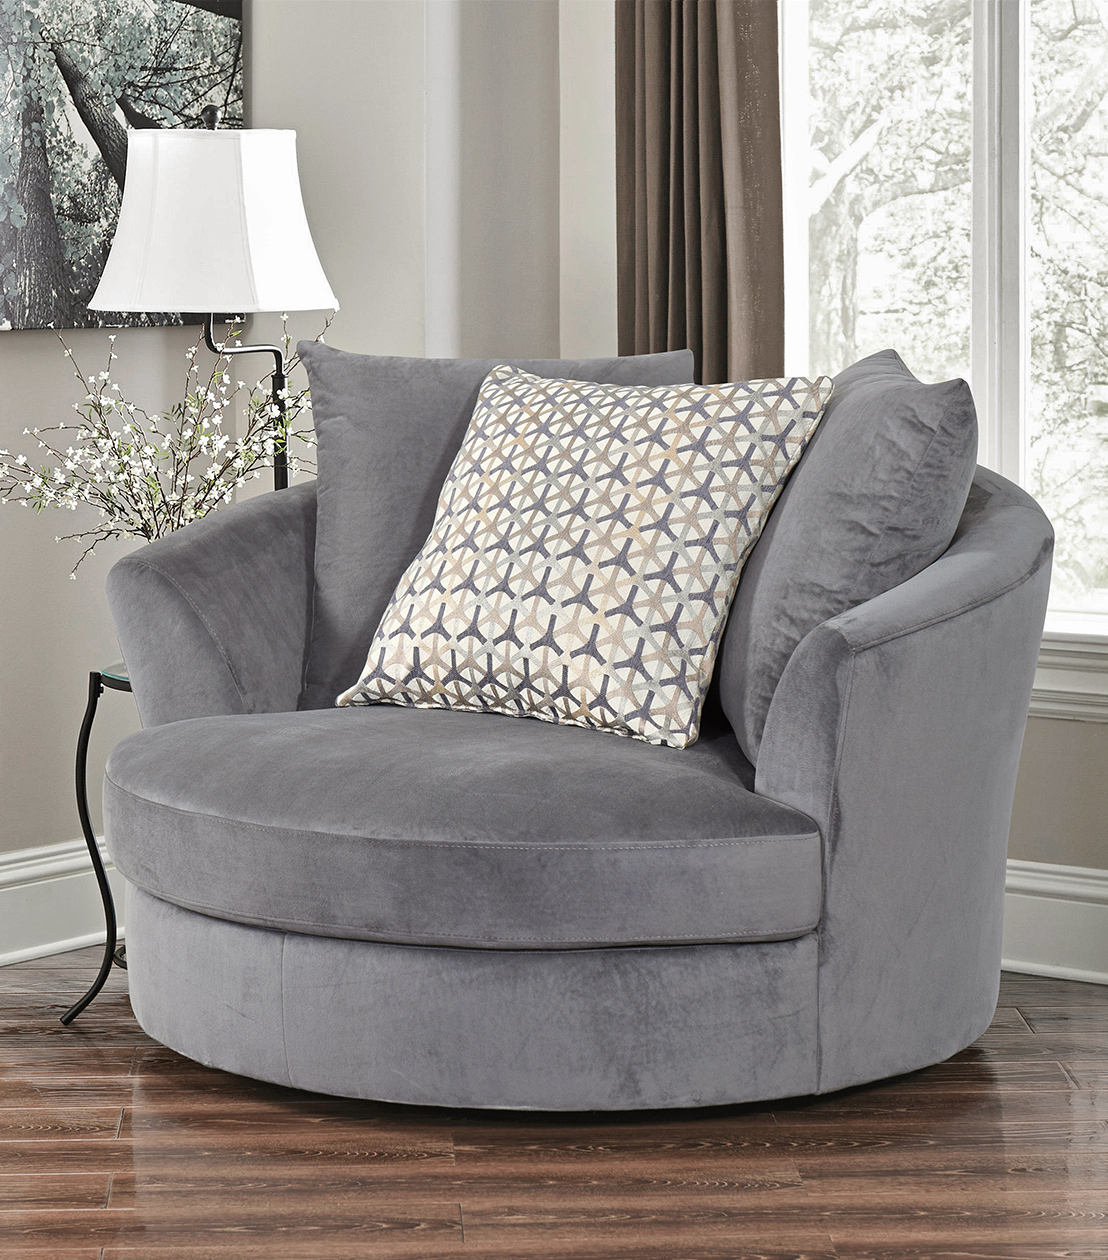 2019 Grey Swivel Chairs Regarding Chairs : Tanya Swivel Chair, Grey (View 5 of 20)